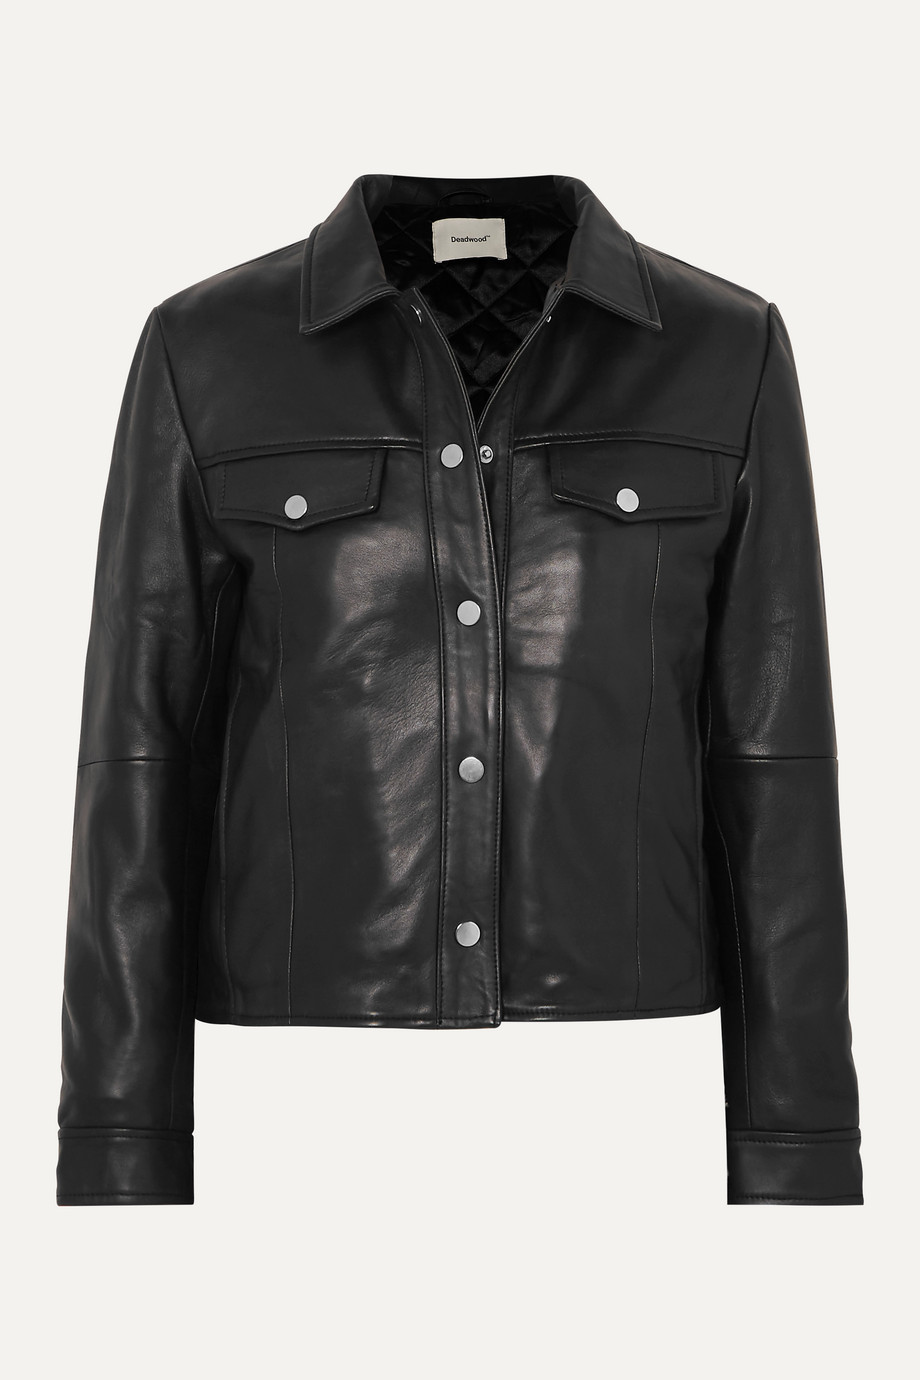 Deadwood + NET SUSTAIN Frankie leather jacket